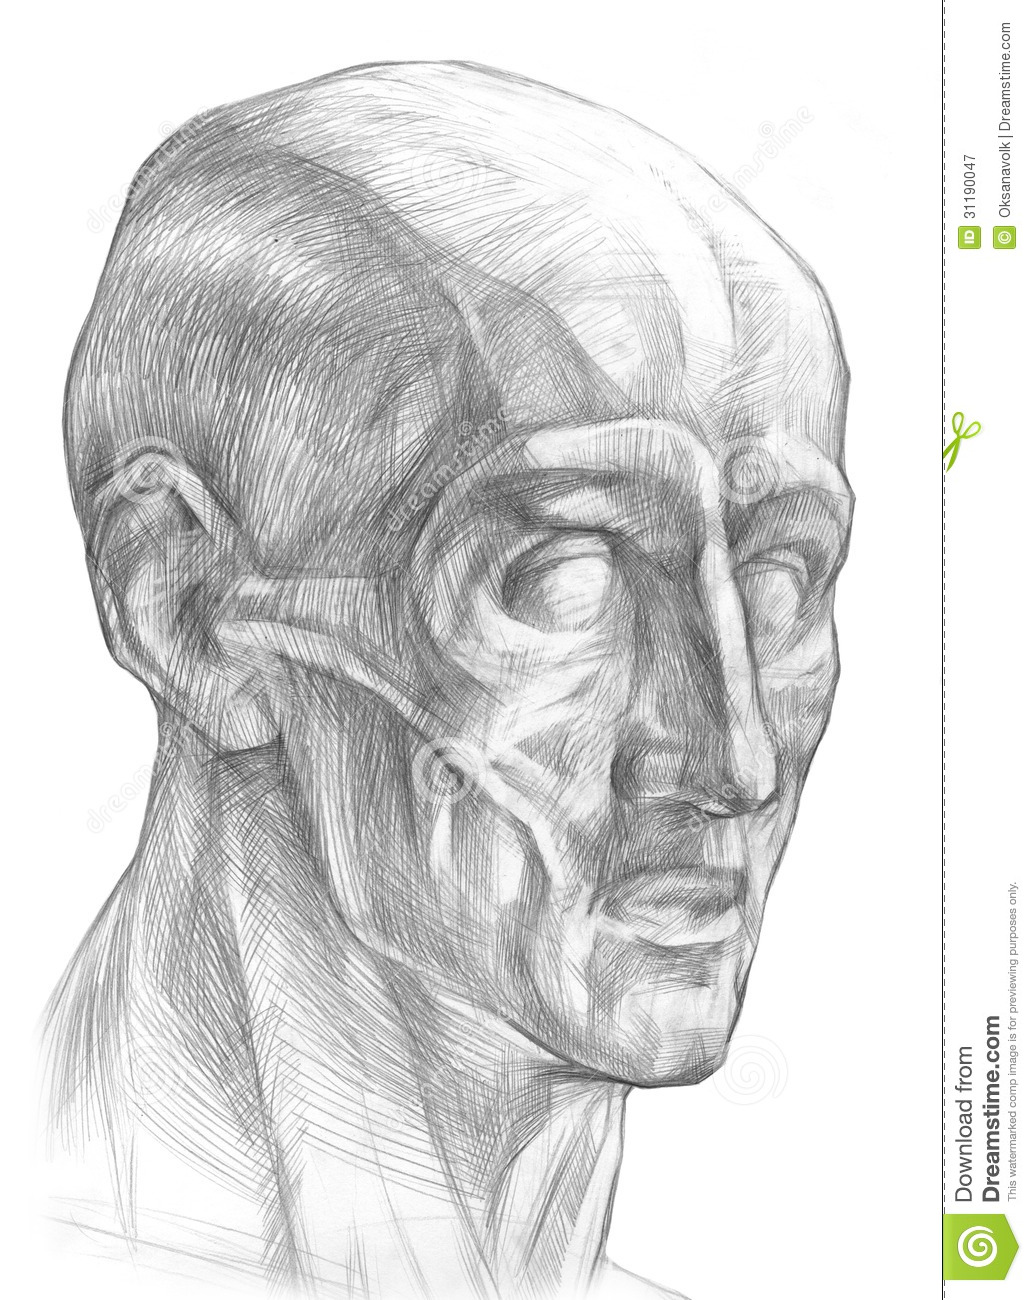 Muscles Of The Human Head Illustration Stock Illustration